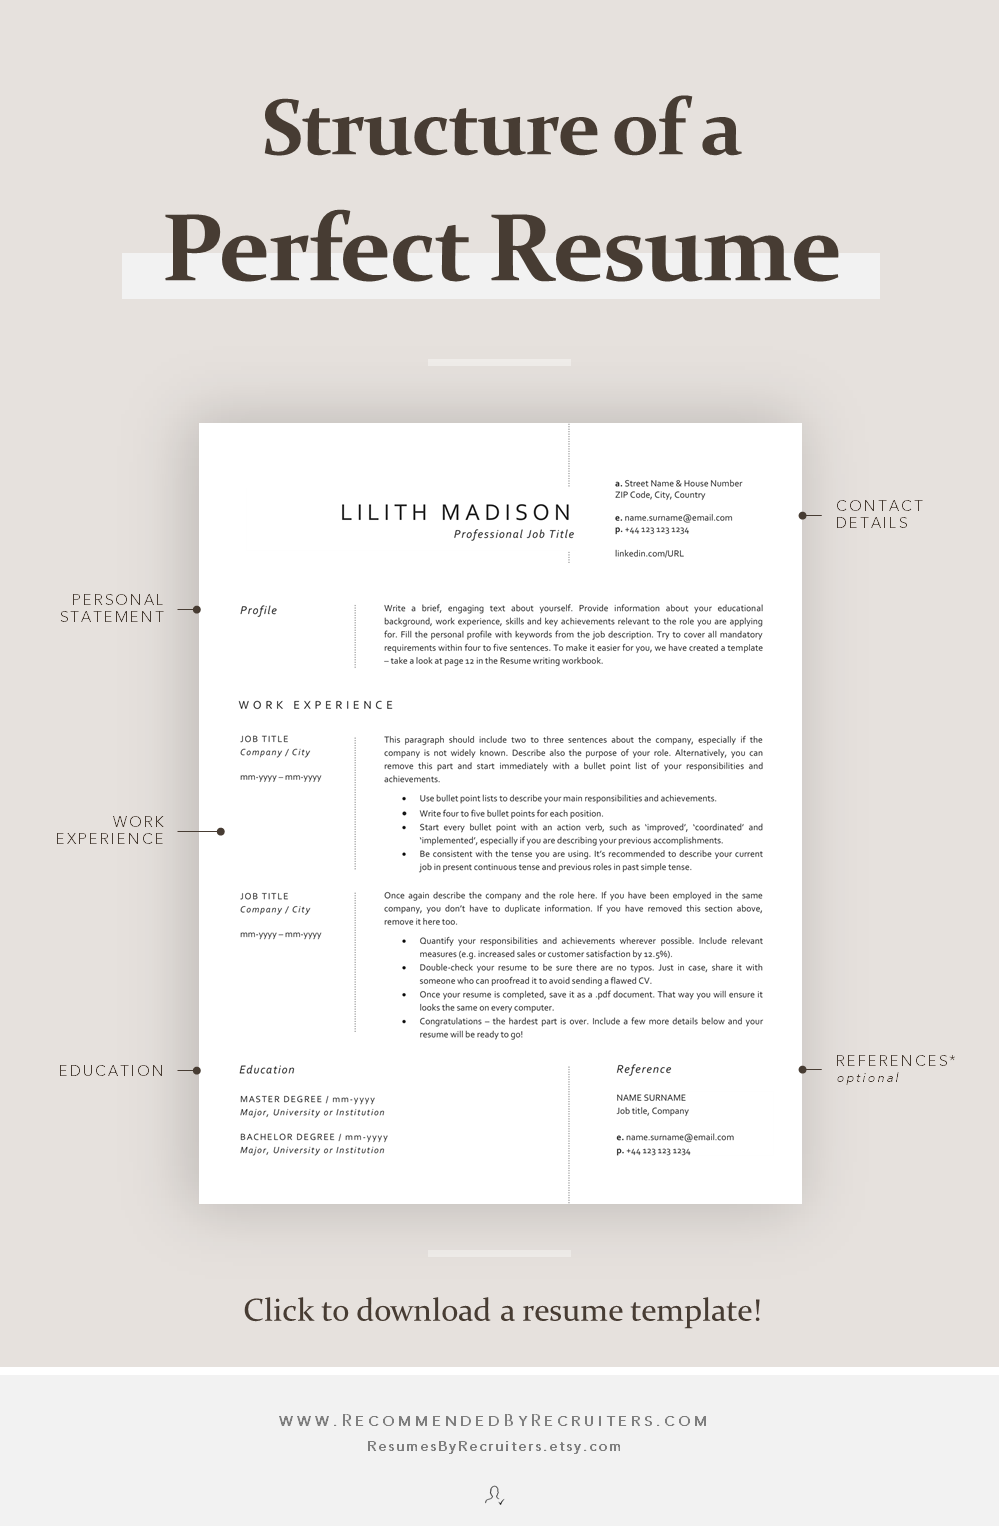 Engineering Skills for Resume Of Structure Of A Perfect Resume How to Structure Cv Main Parts Of A Resume Curriculum Vitae Advice